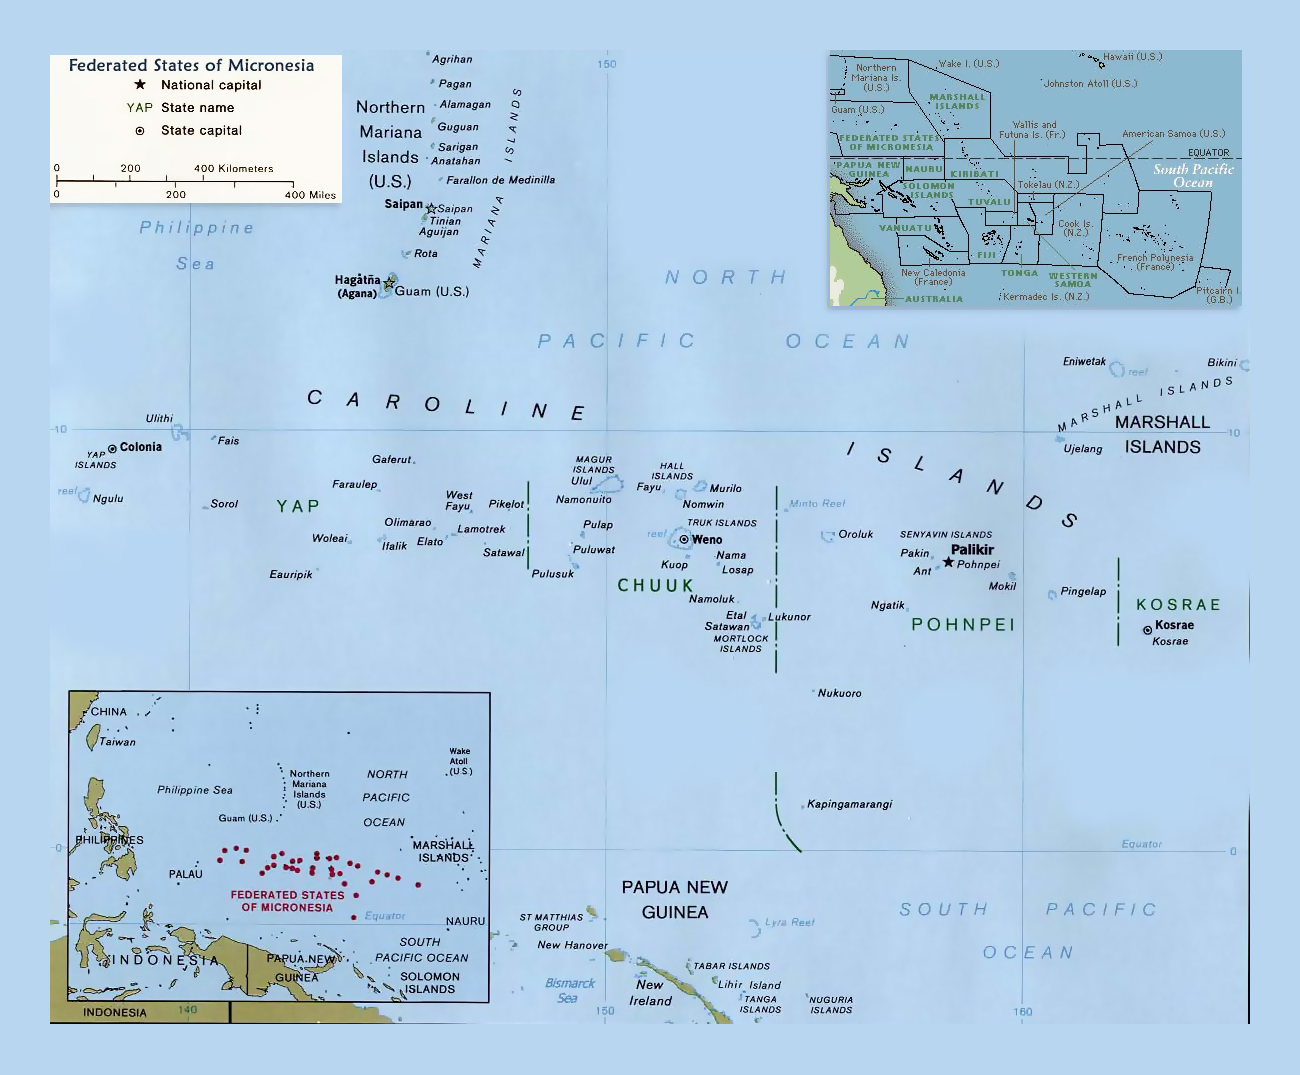 Detailed political map of Federated States of Micronesia with major